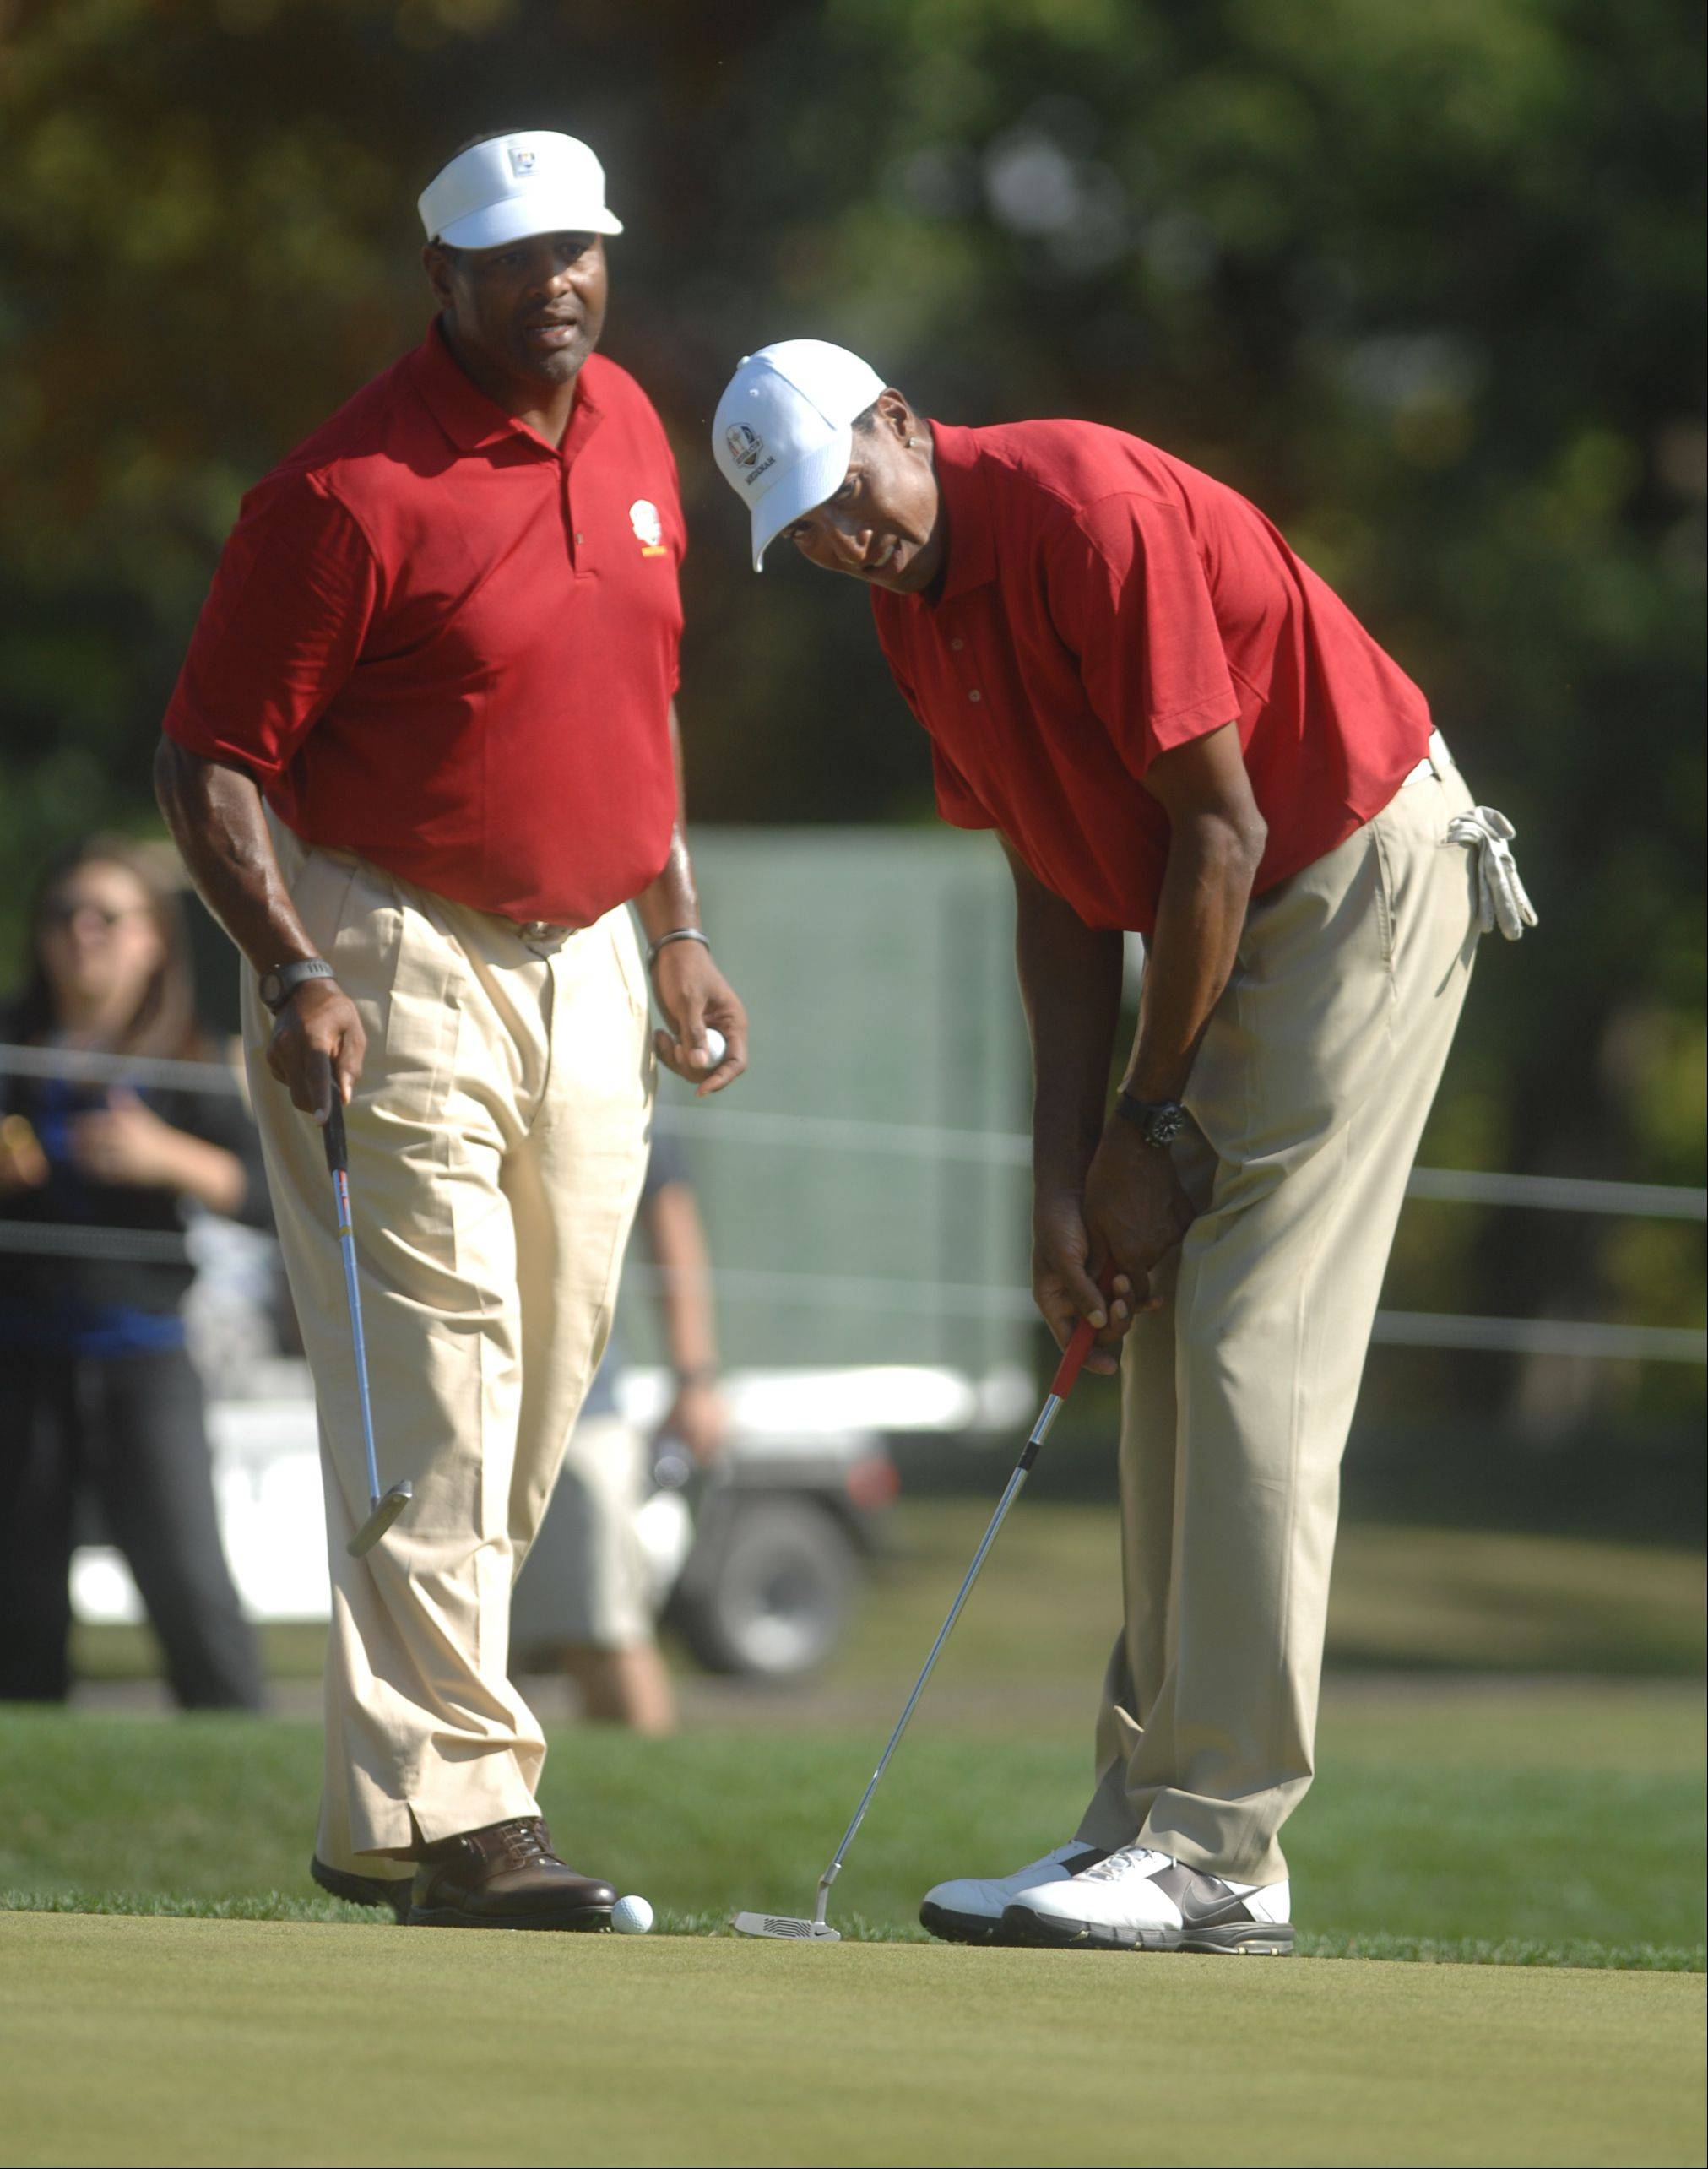 Richard Dent, left, watched Scottie Pippen putt on the third hole.